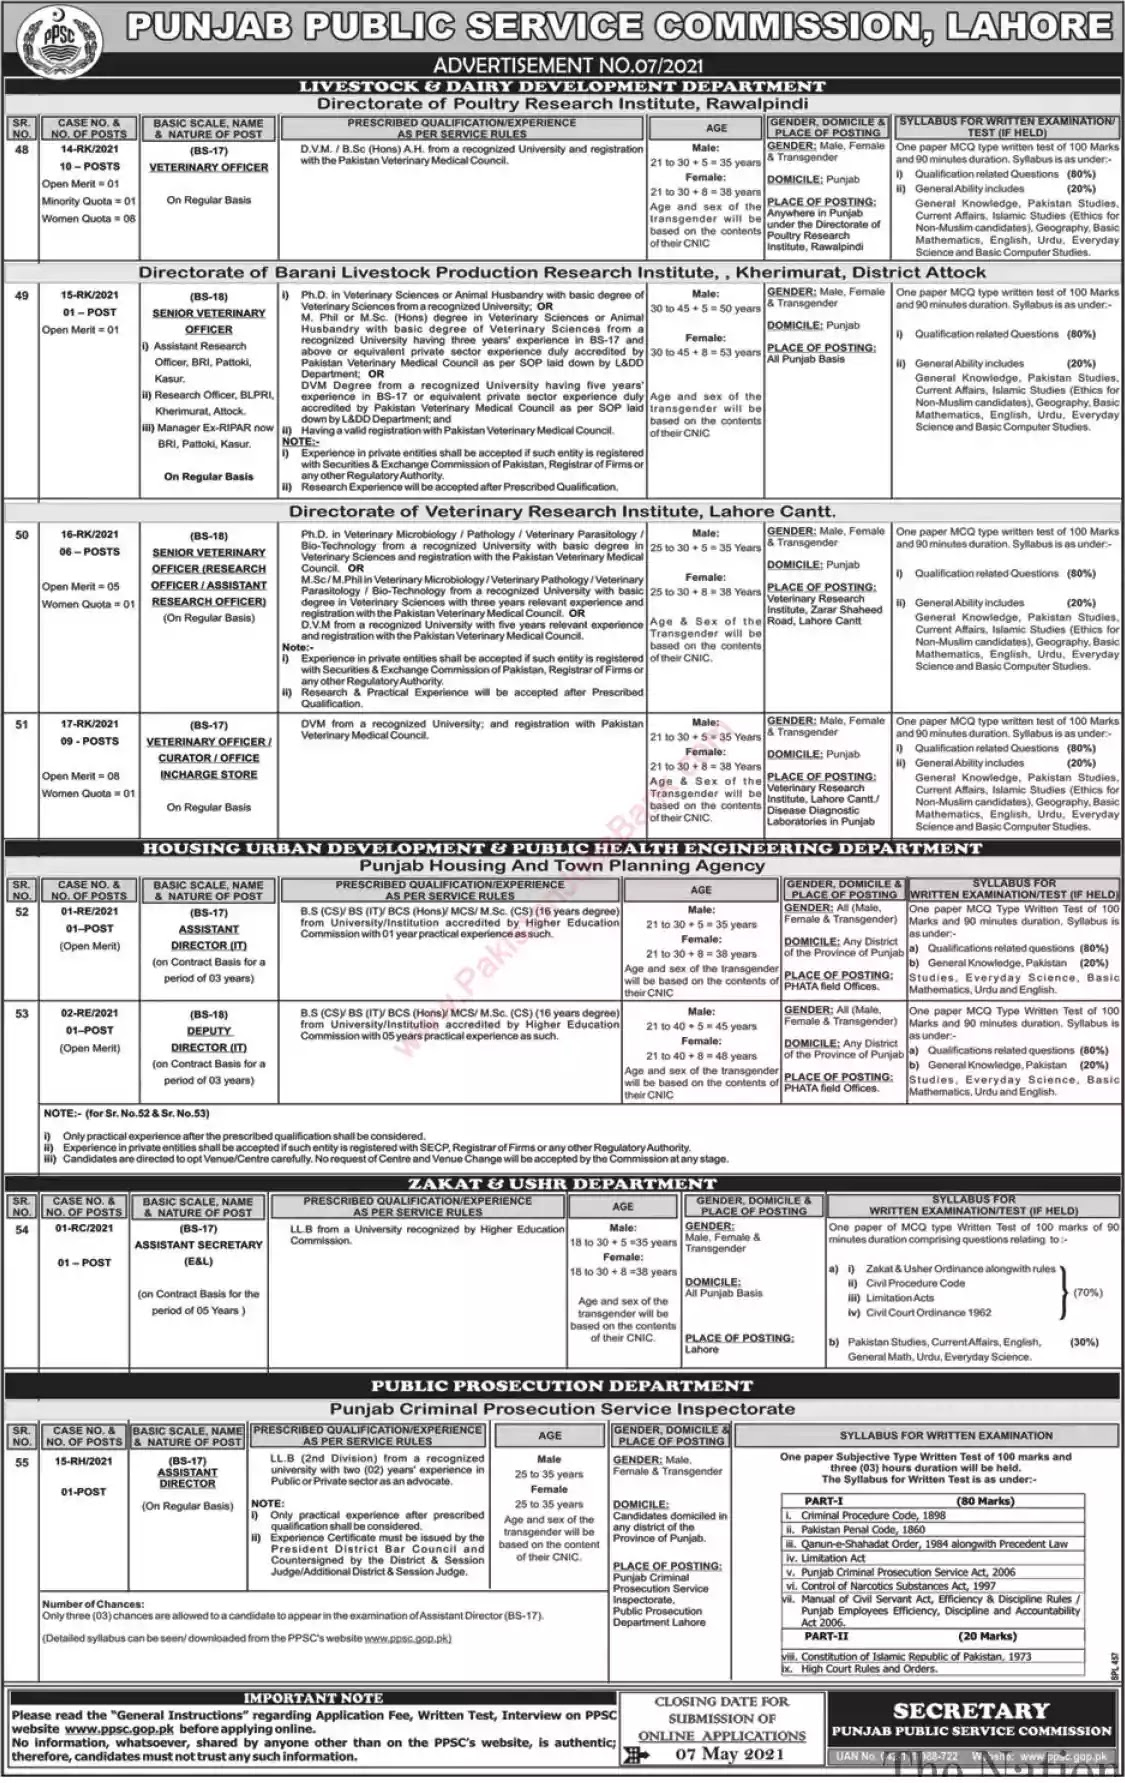 New Jobs in Pakistan Punjab Public Service Commission Lahore Jobs 2021 | Apply Online